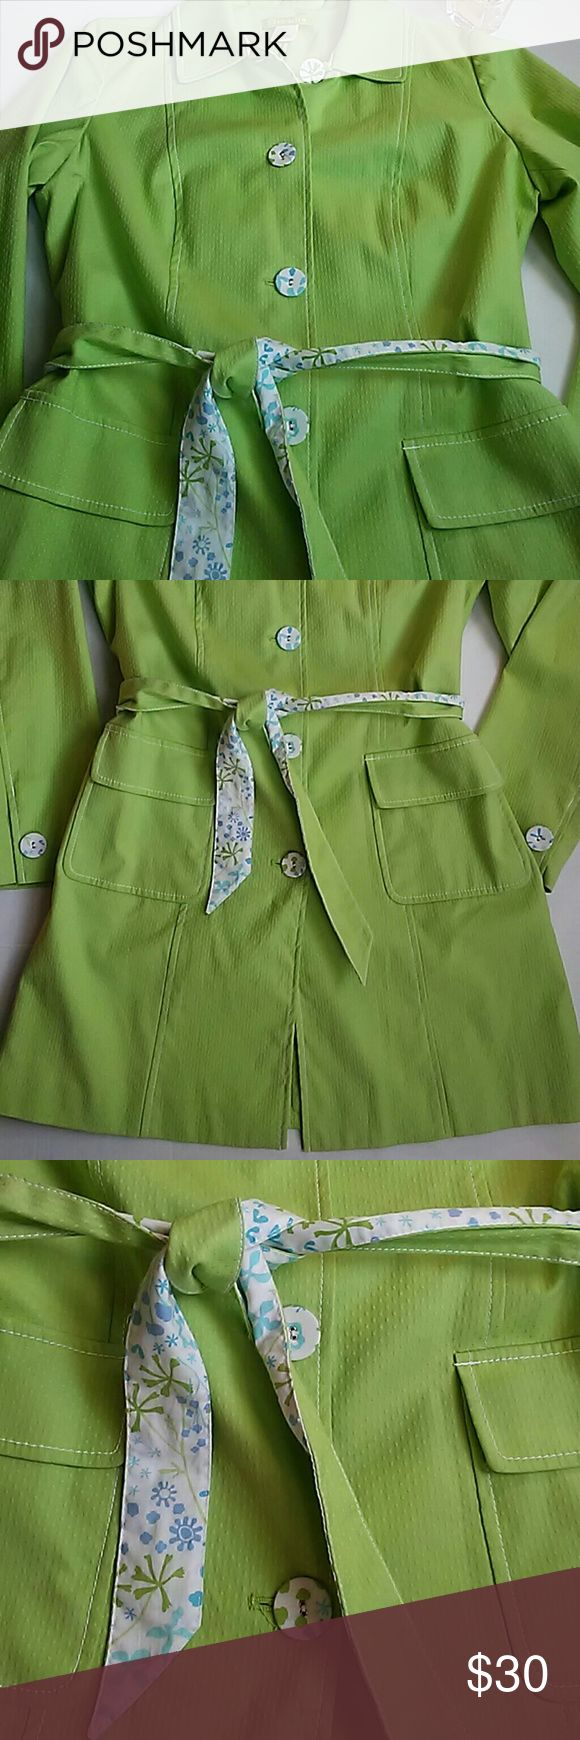 """Sigrid Olsen Jacket/Trench Coat M Lime Green Designer Trench Coat. Size Medium. White floral pattern accents. Excellent. Pre-owned condition. Material: 97% cotton, 3% spandex. Measurements: length 34 2/4"""", width 21"""", sleeve length 17"""". Sigrid Olsen Jackets & Coats Trench Coats"""